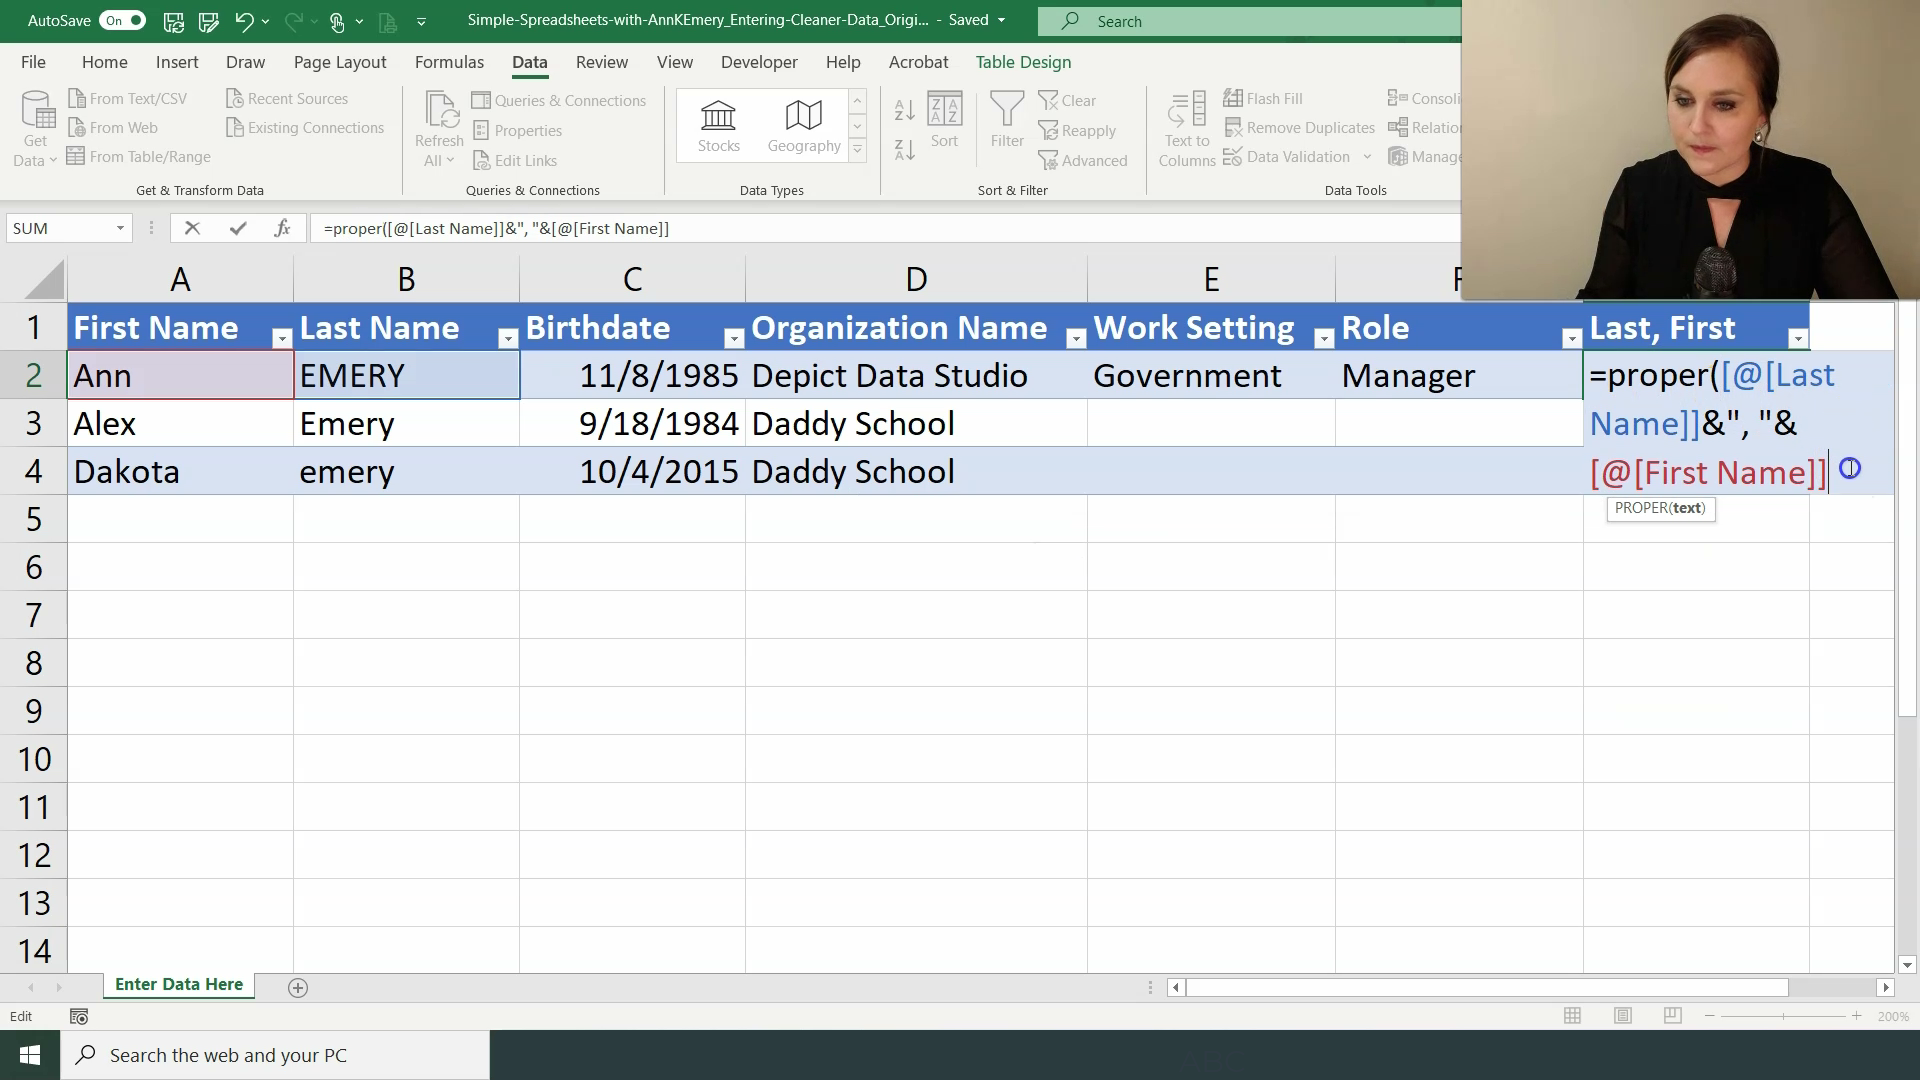 Step 6. Add Formulas for Recoding Data